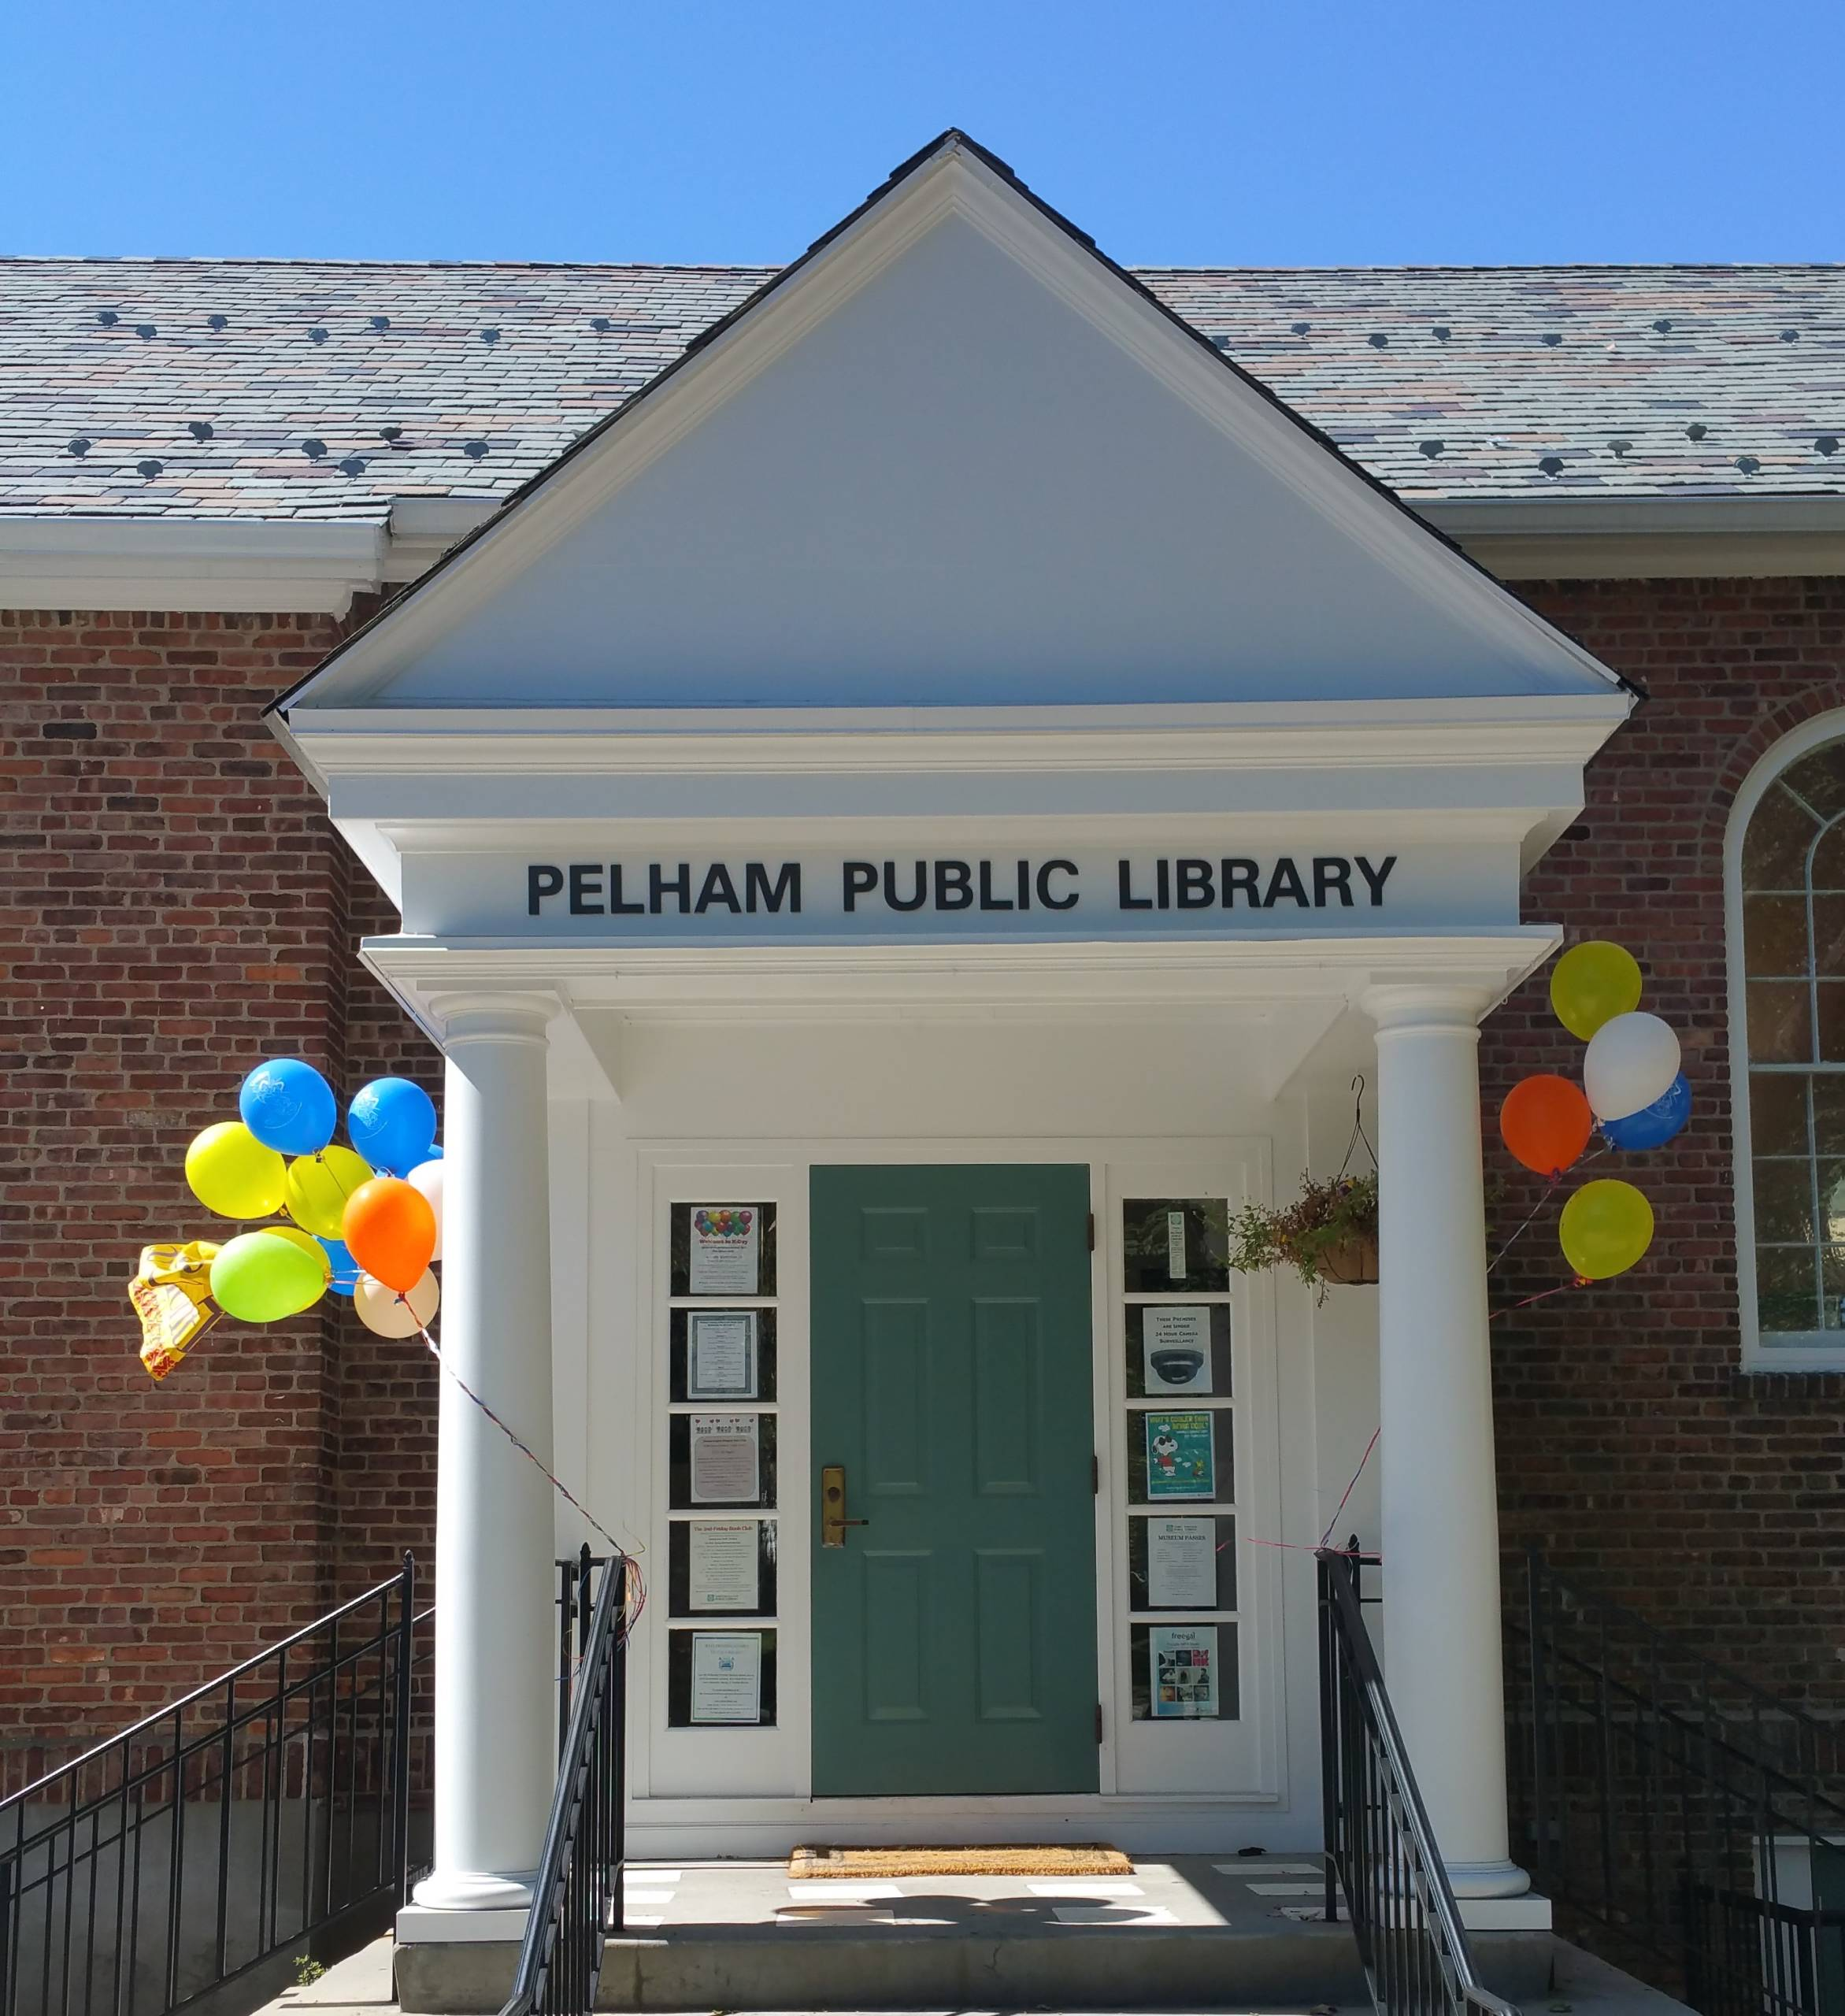 library with balloons